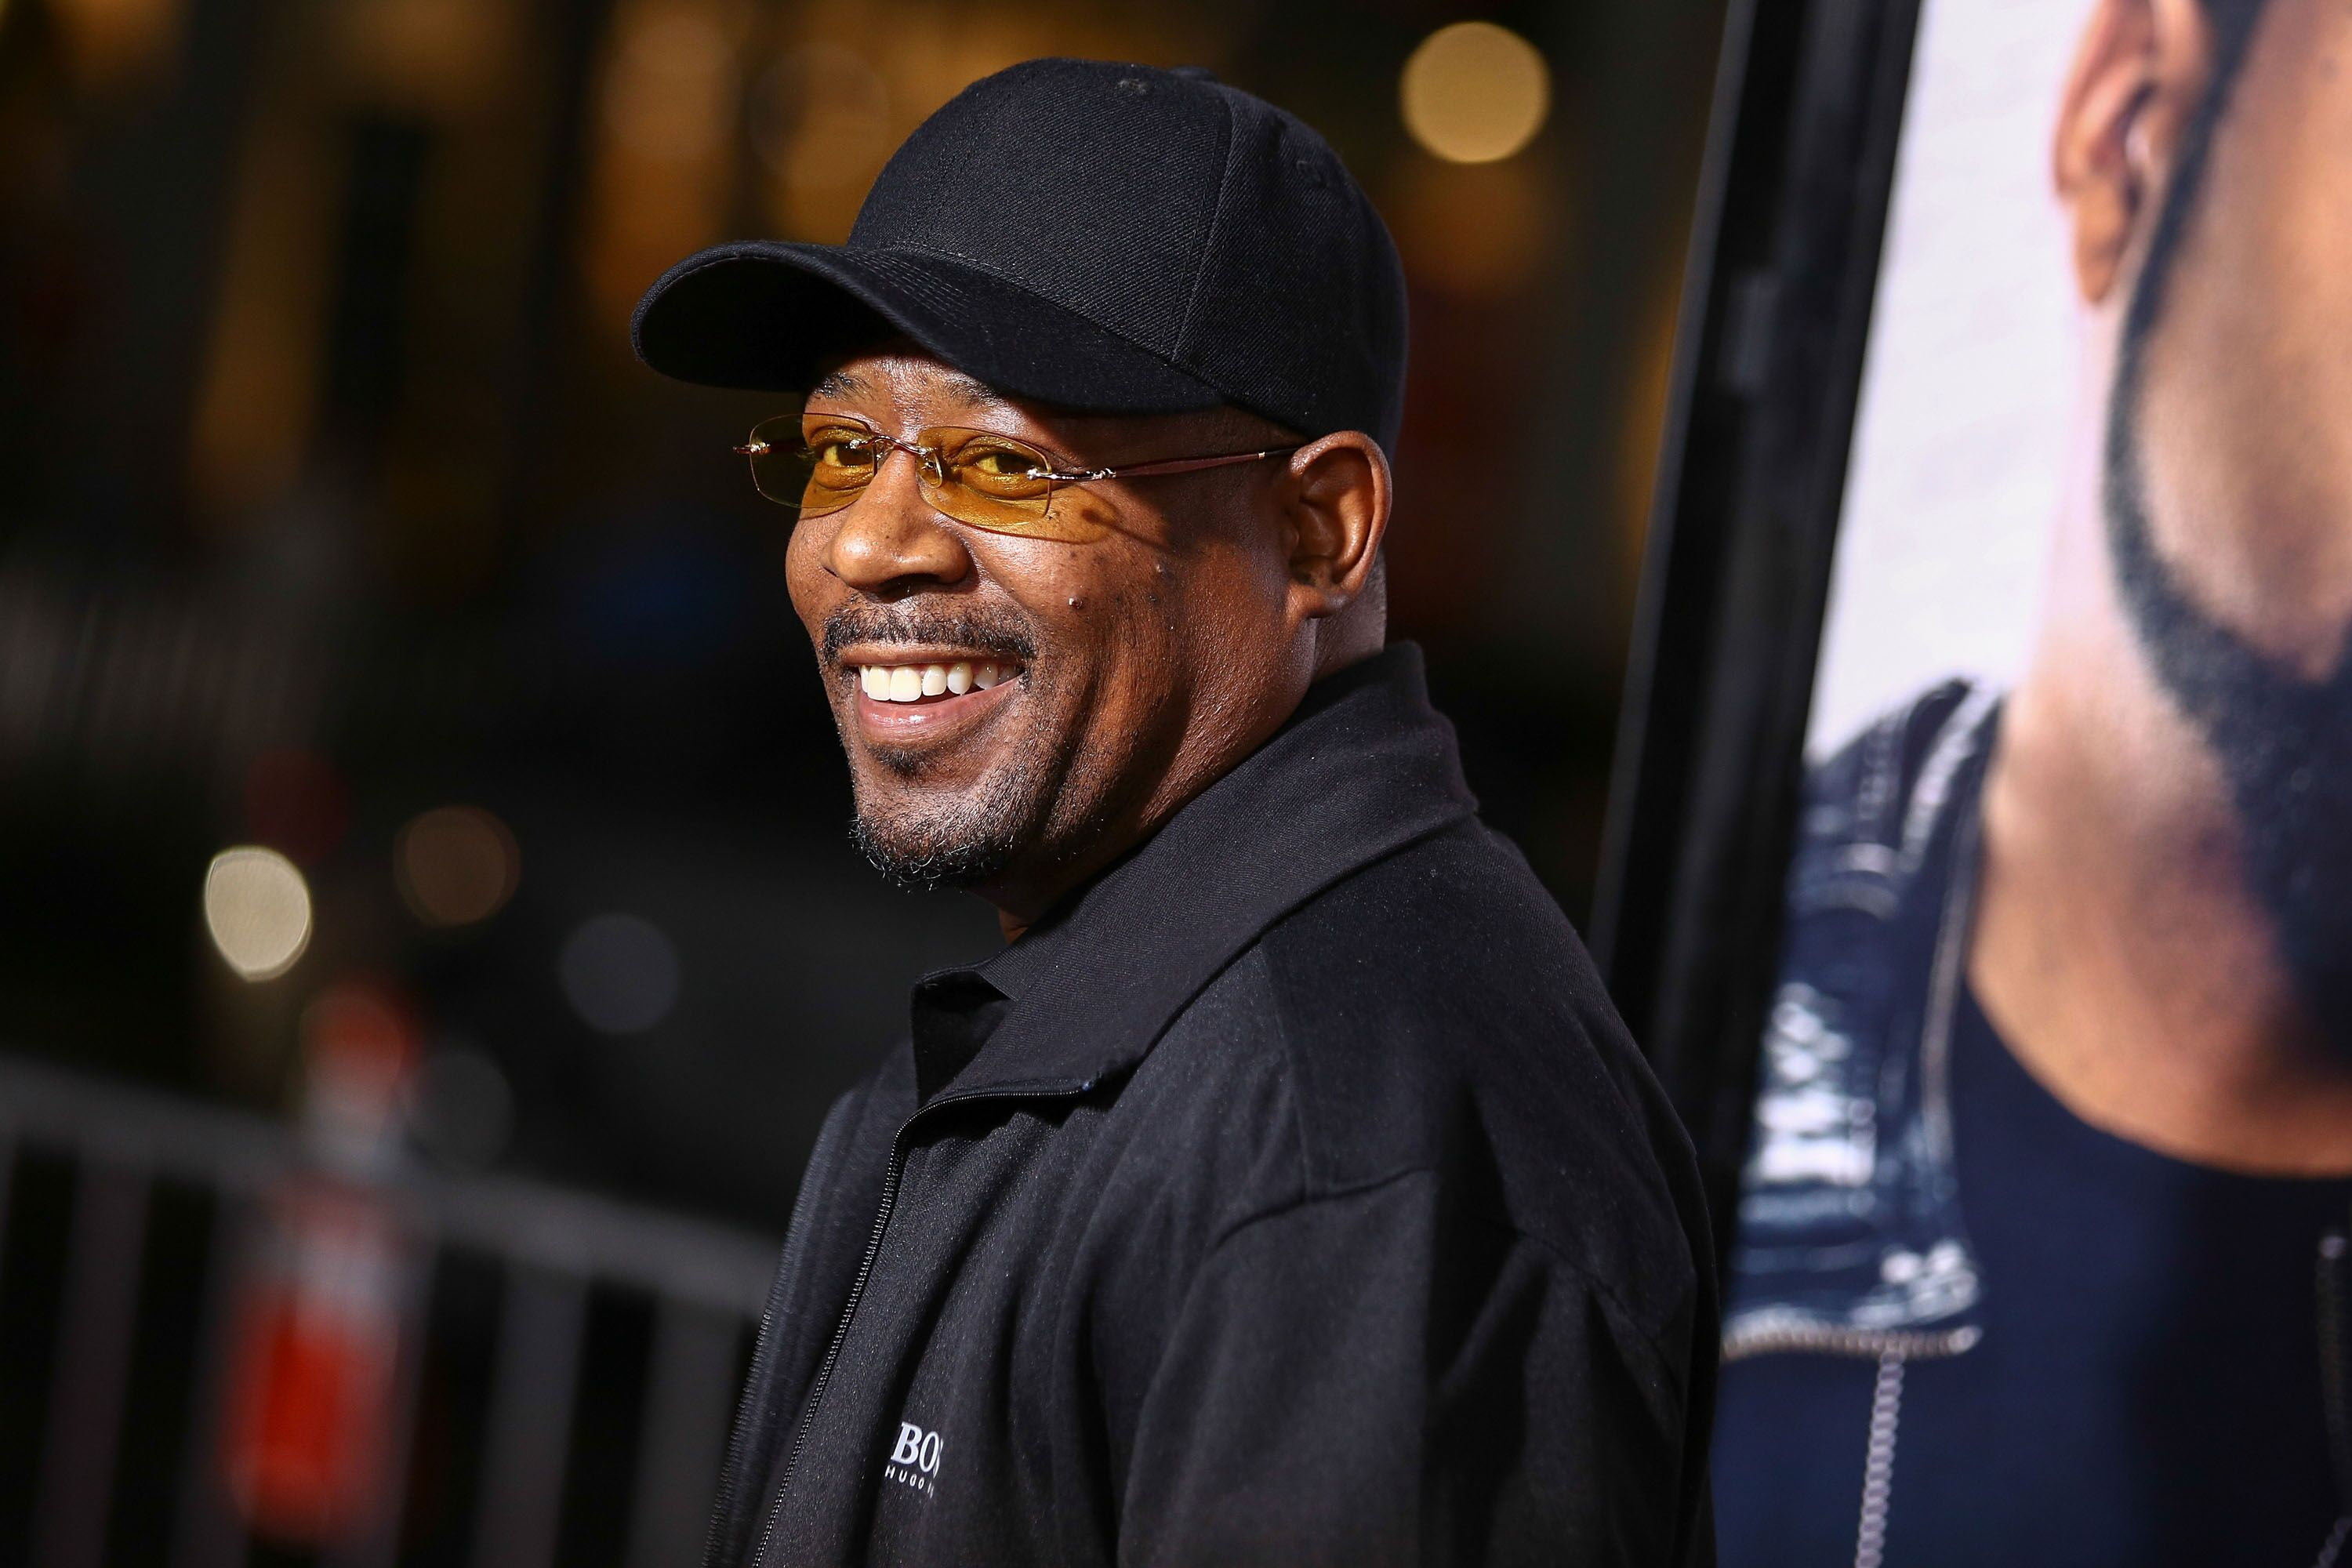 Martin Lawrence attending a movie premiere | Source: Getty Images/GlobalImagesUkraine